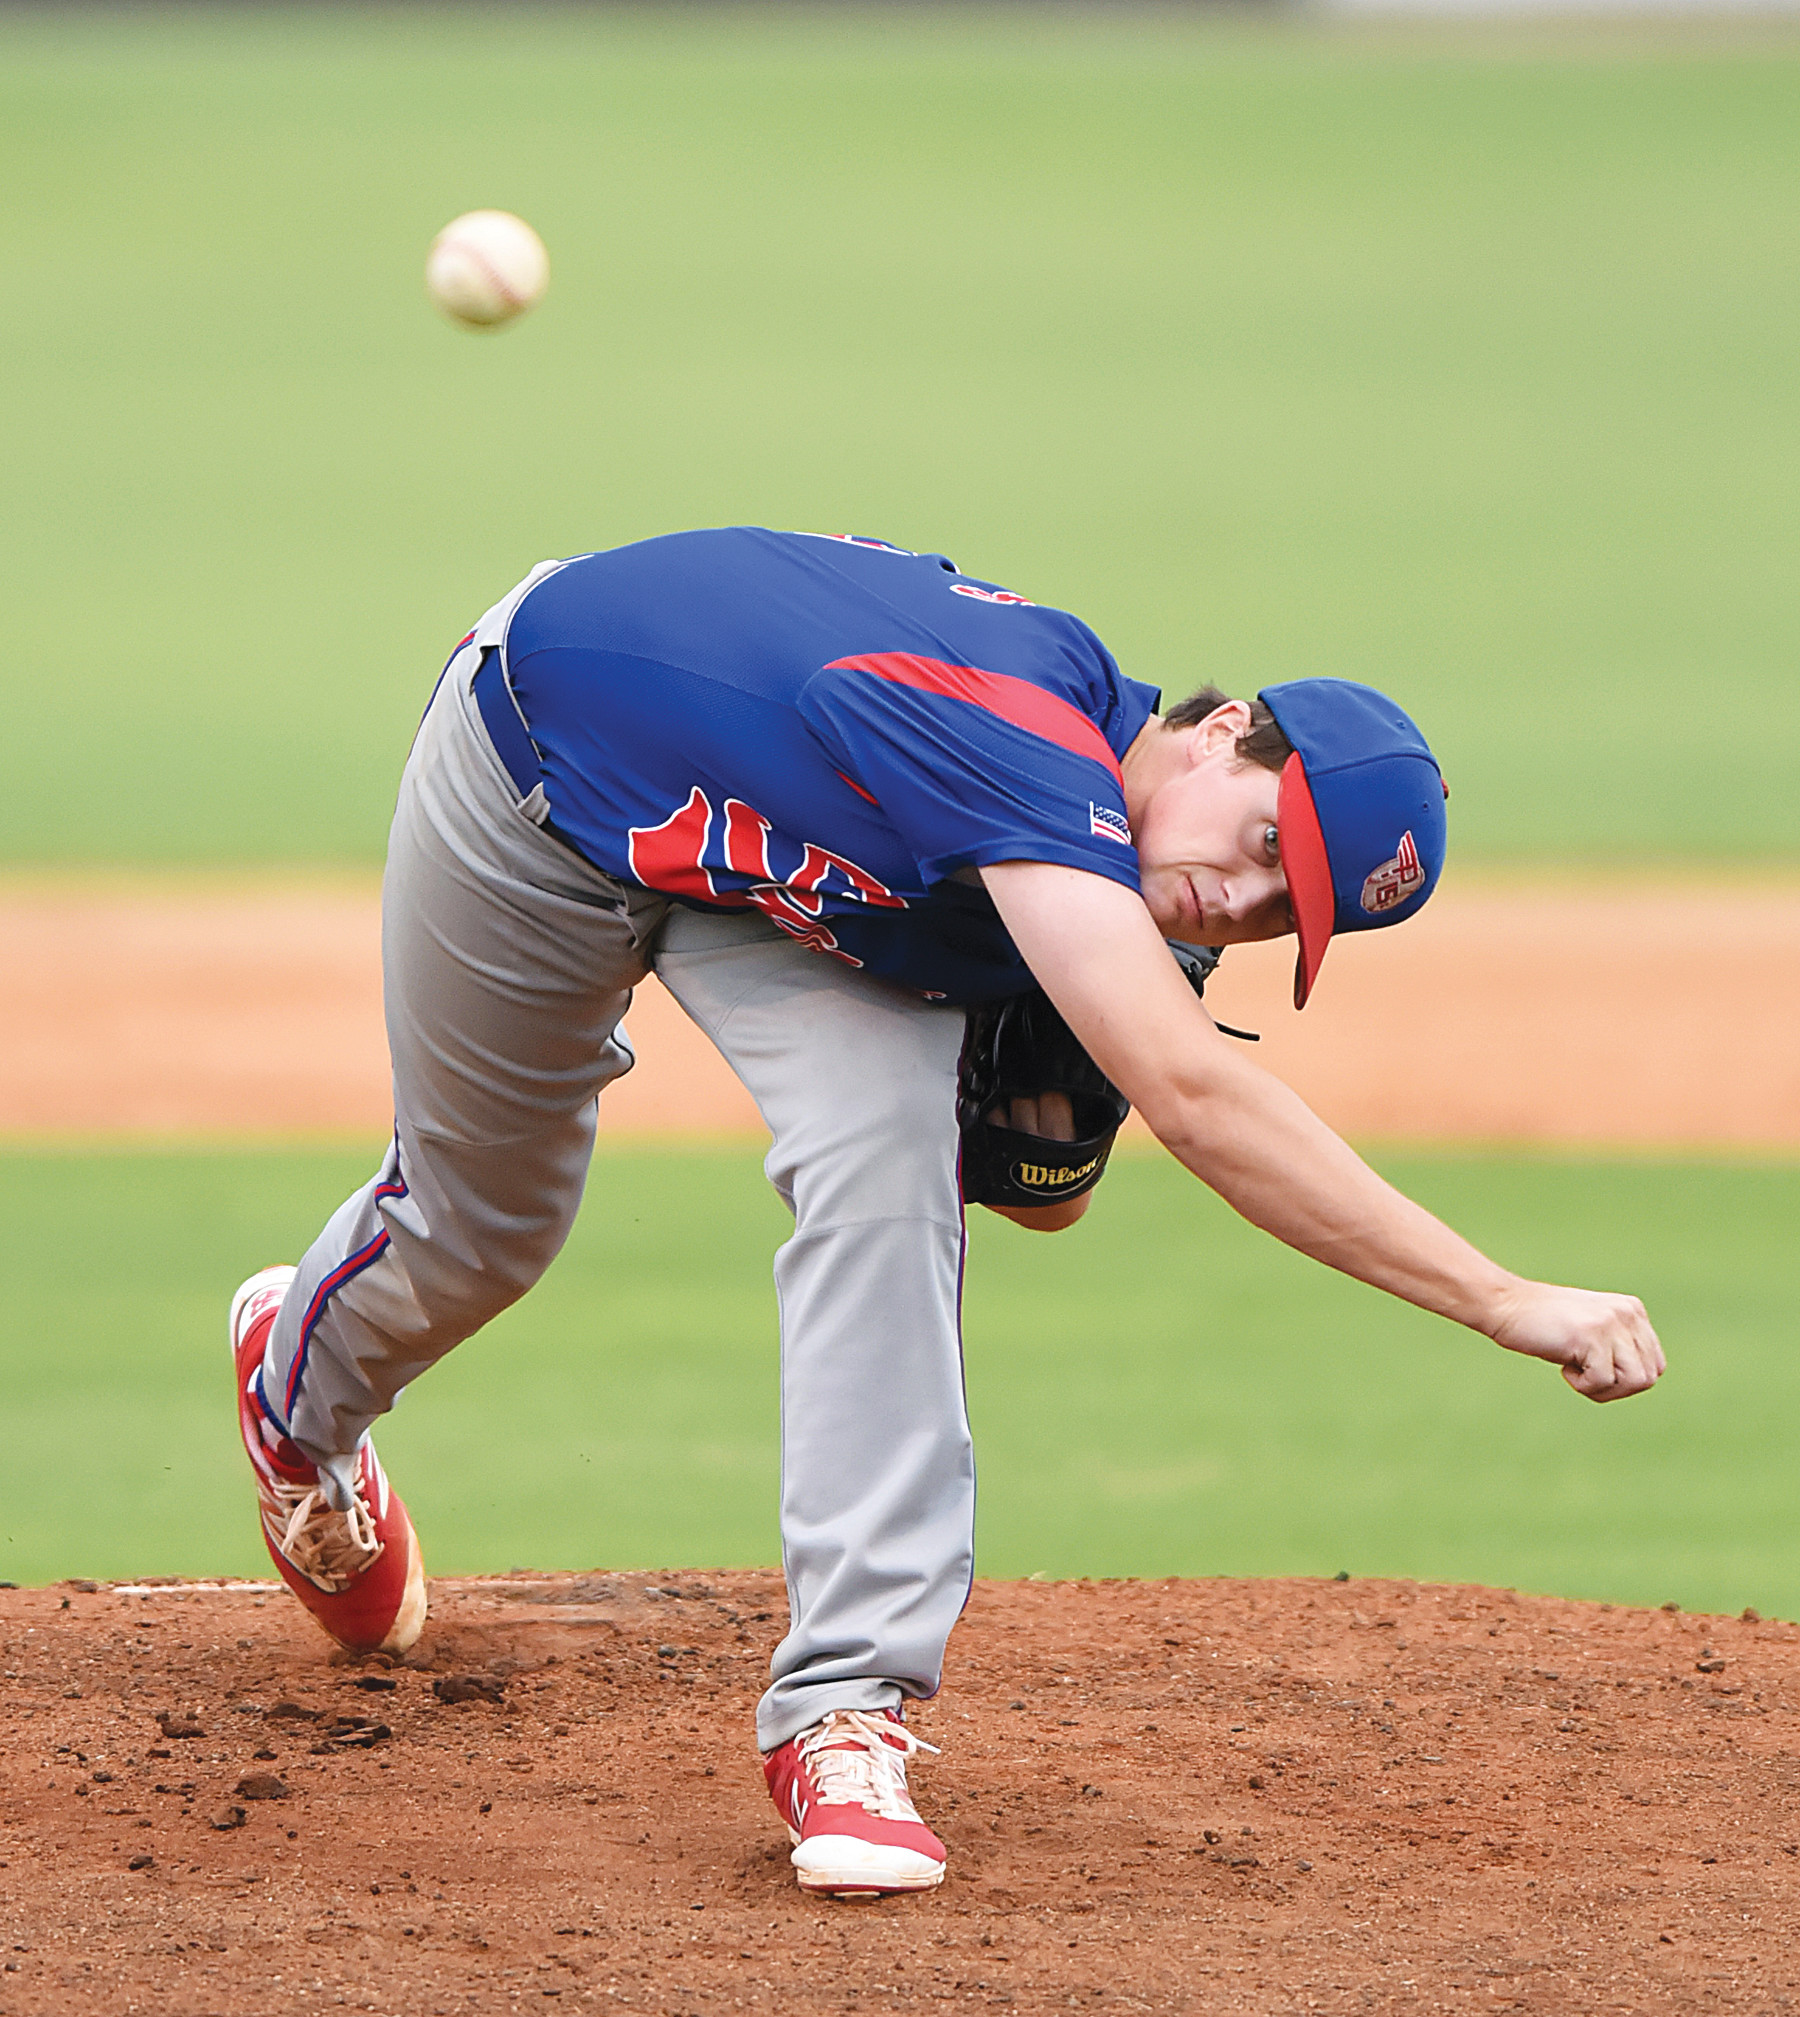 Sumter pitcher Lathan Todd tossed a 4-hit, 8-inning shutout in the P-15's 10-0 victory over Camden on Tuesday at Riley Park. Todd struck out 12 batters and walked none.